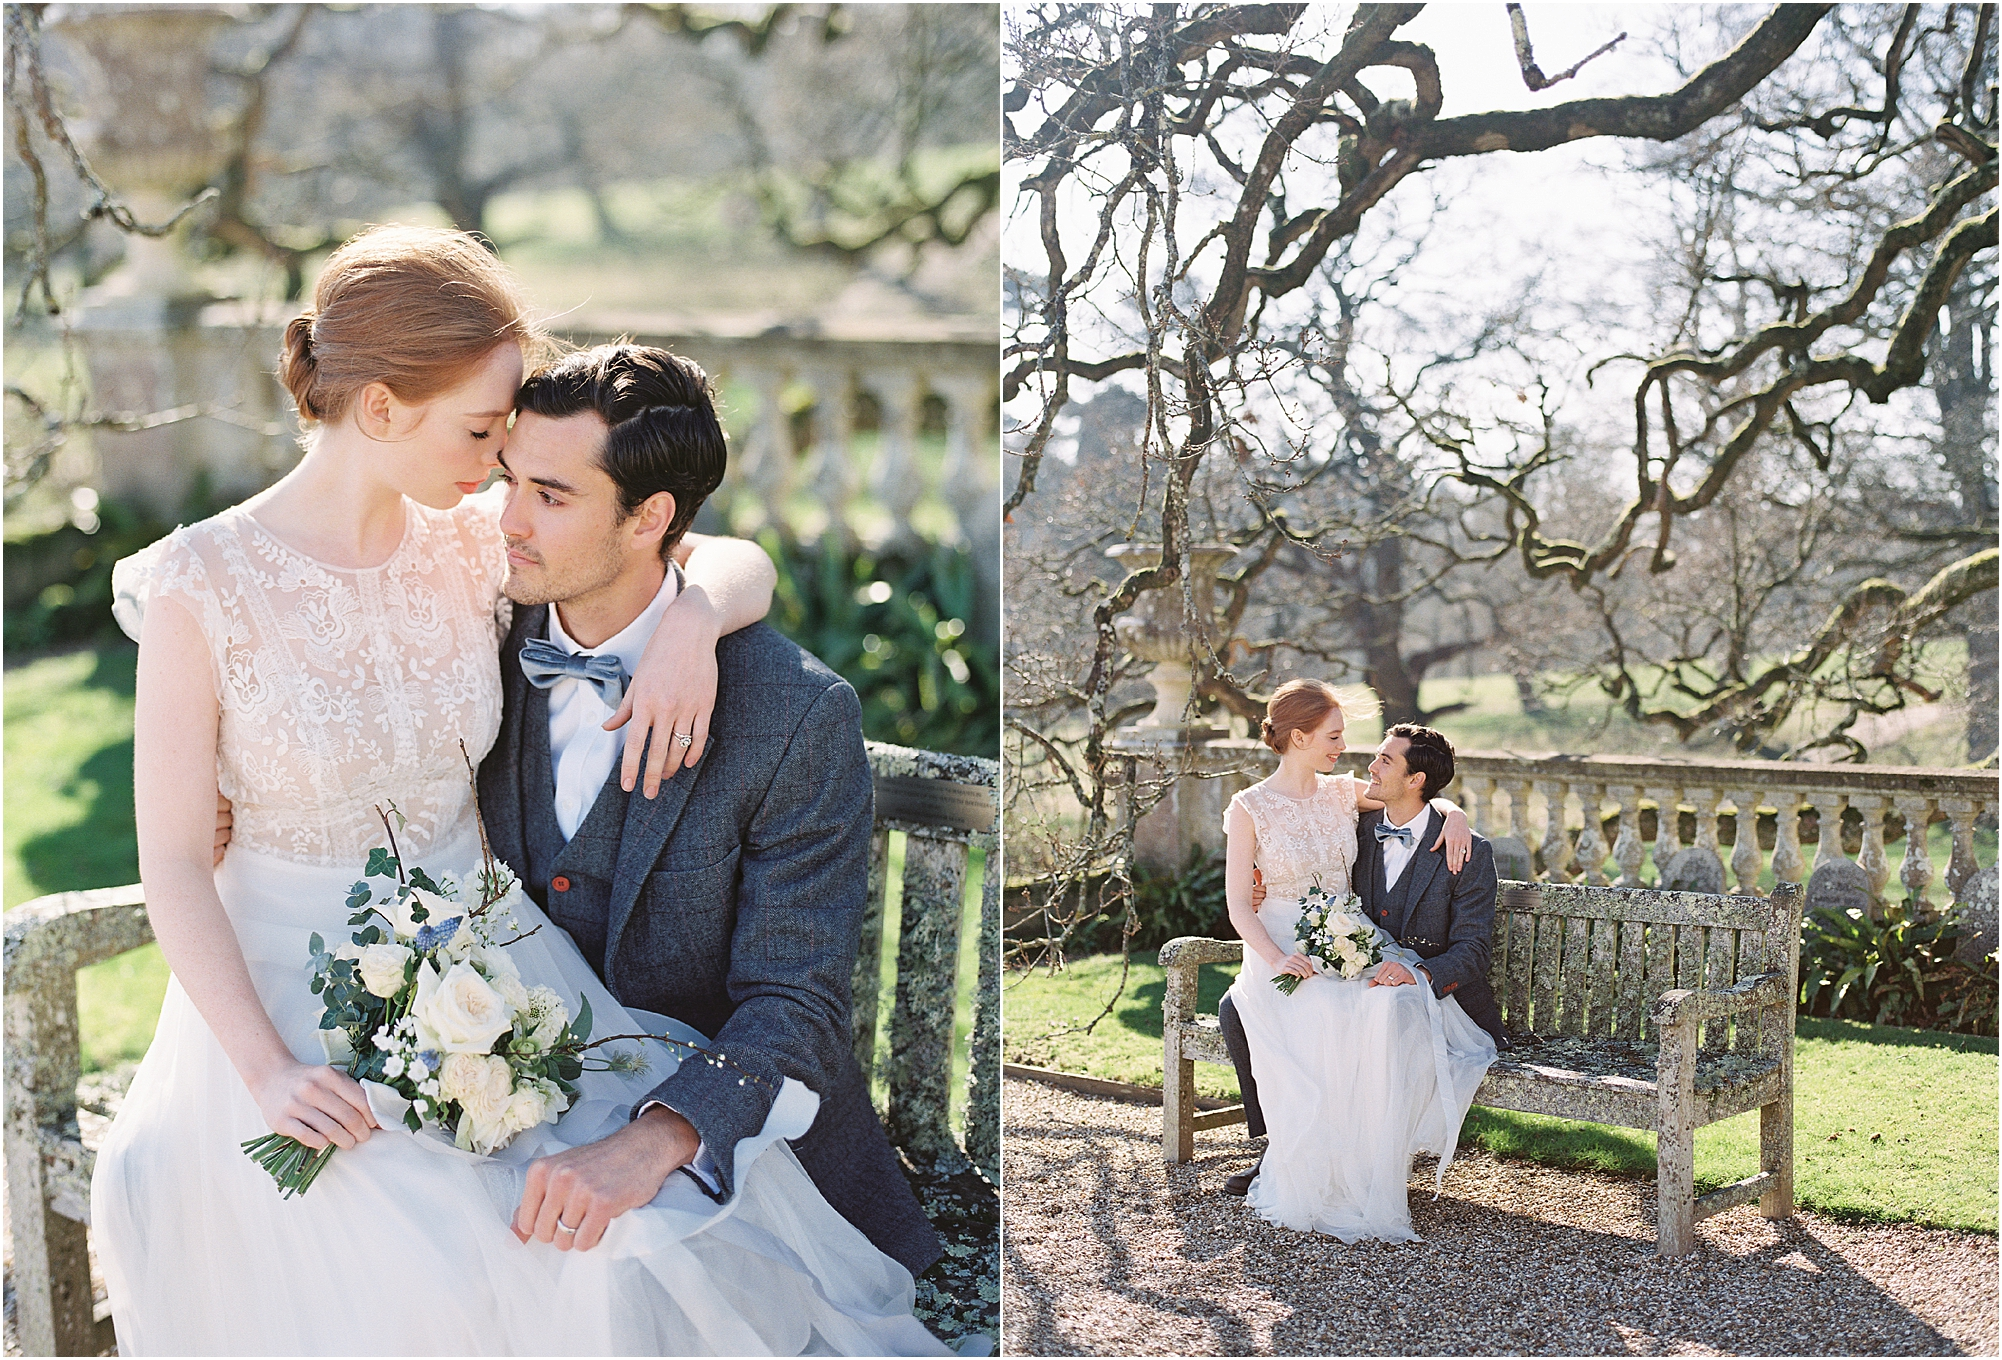 sophisticated bride and groom in the grounds of Somerley House Hampshire wedding venue